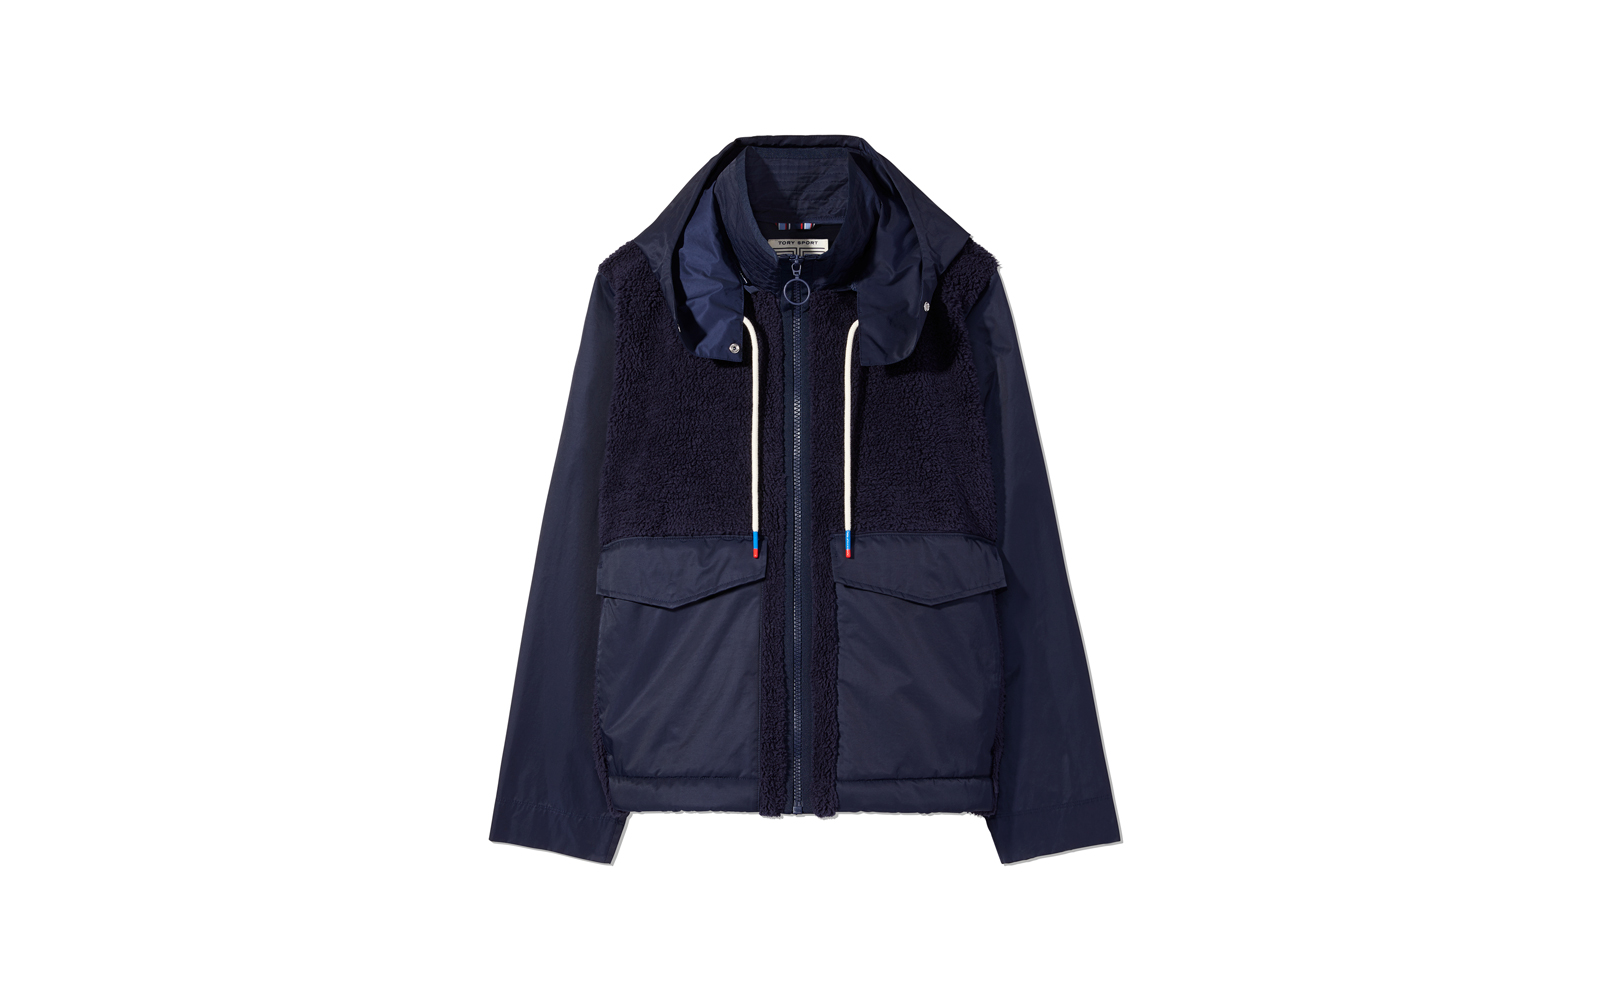 Tory Burch Sherpa Hooded Jacket in Tory Navy